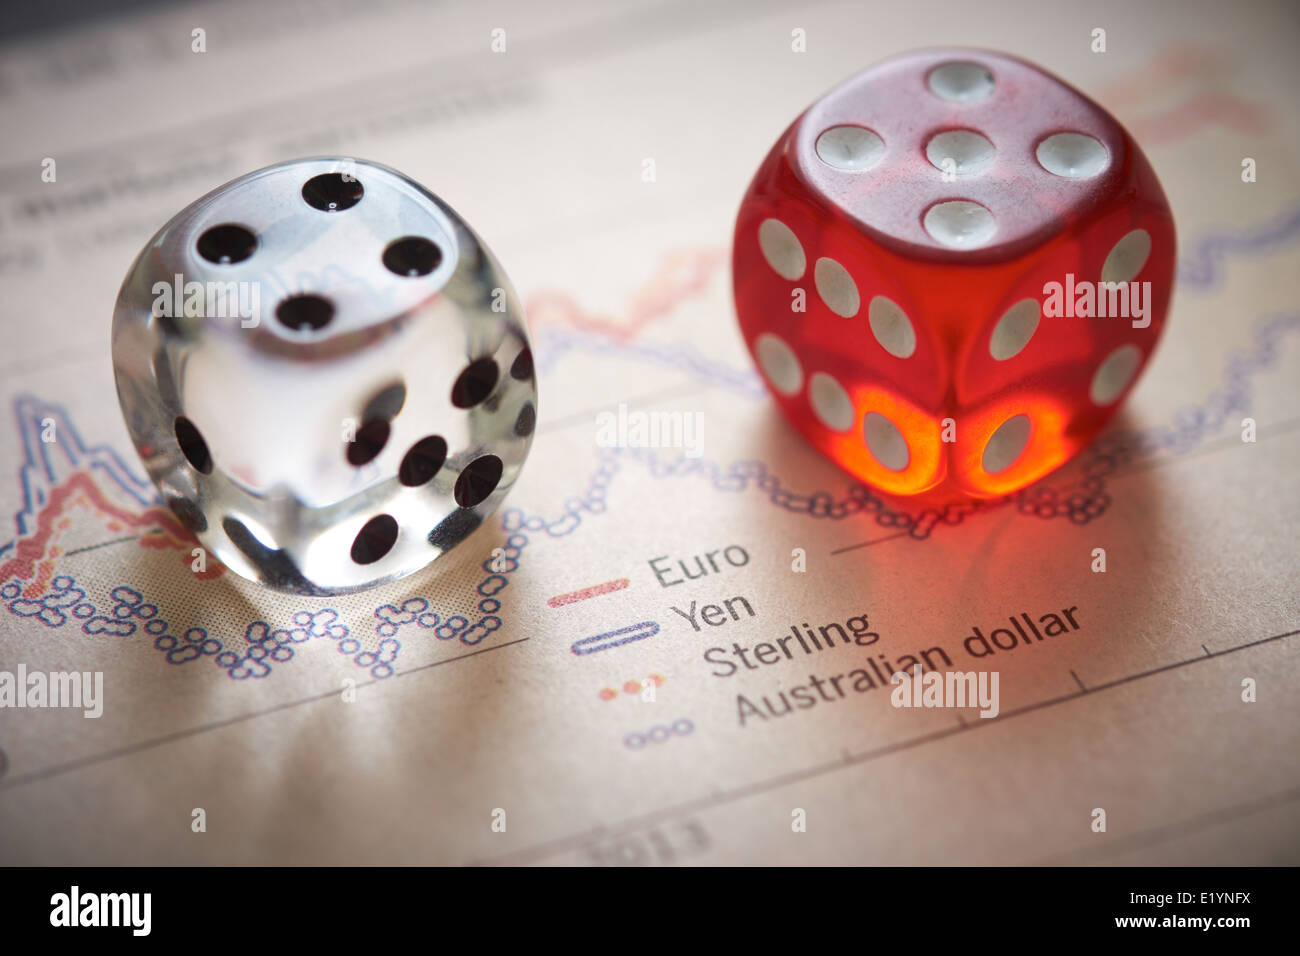 Currency trading. Coloured dice on top of the financial section of a newspaper. - Stock Image